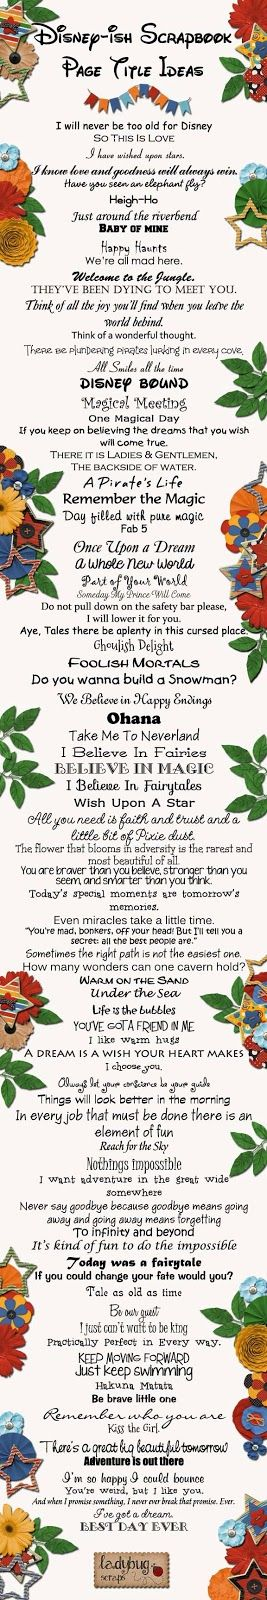 Great list of Disney page titles